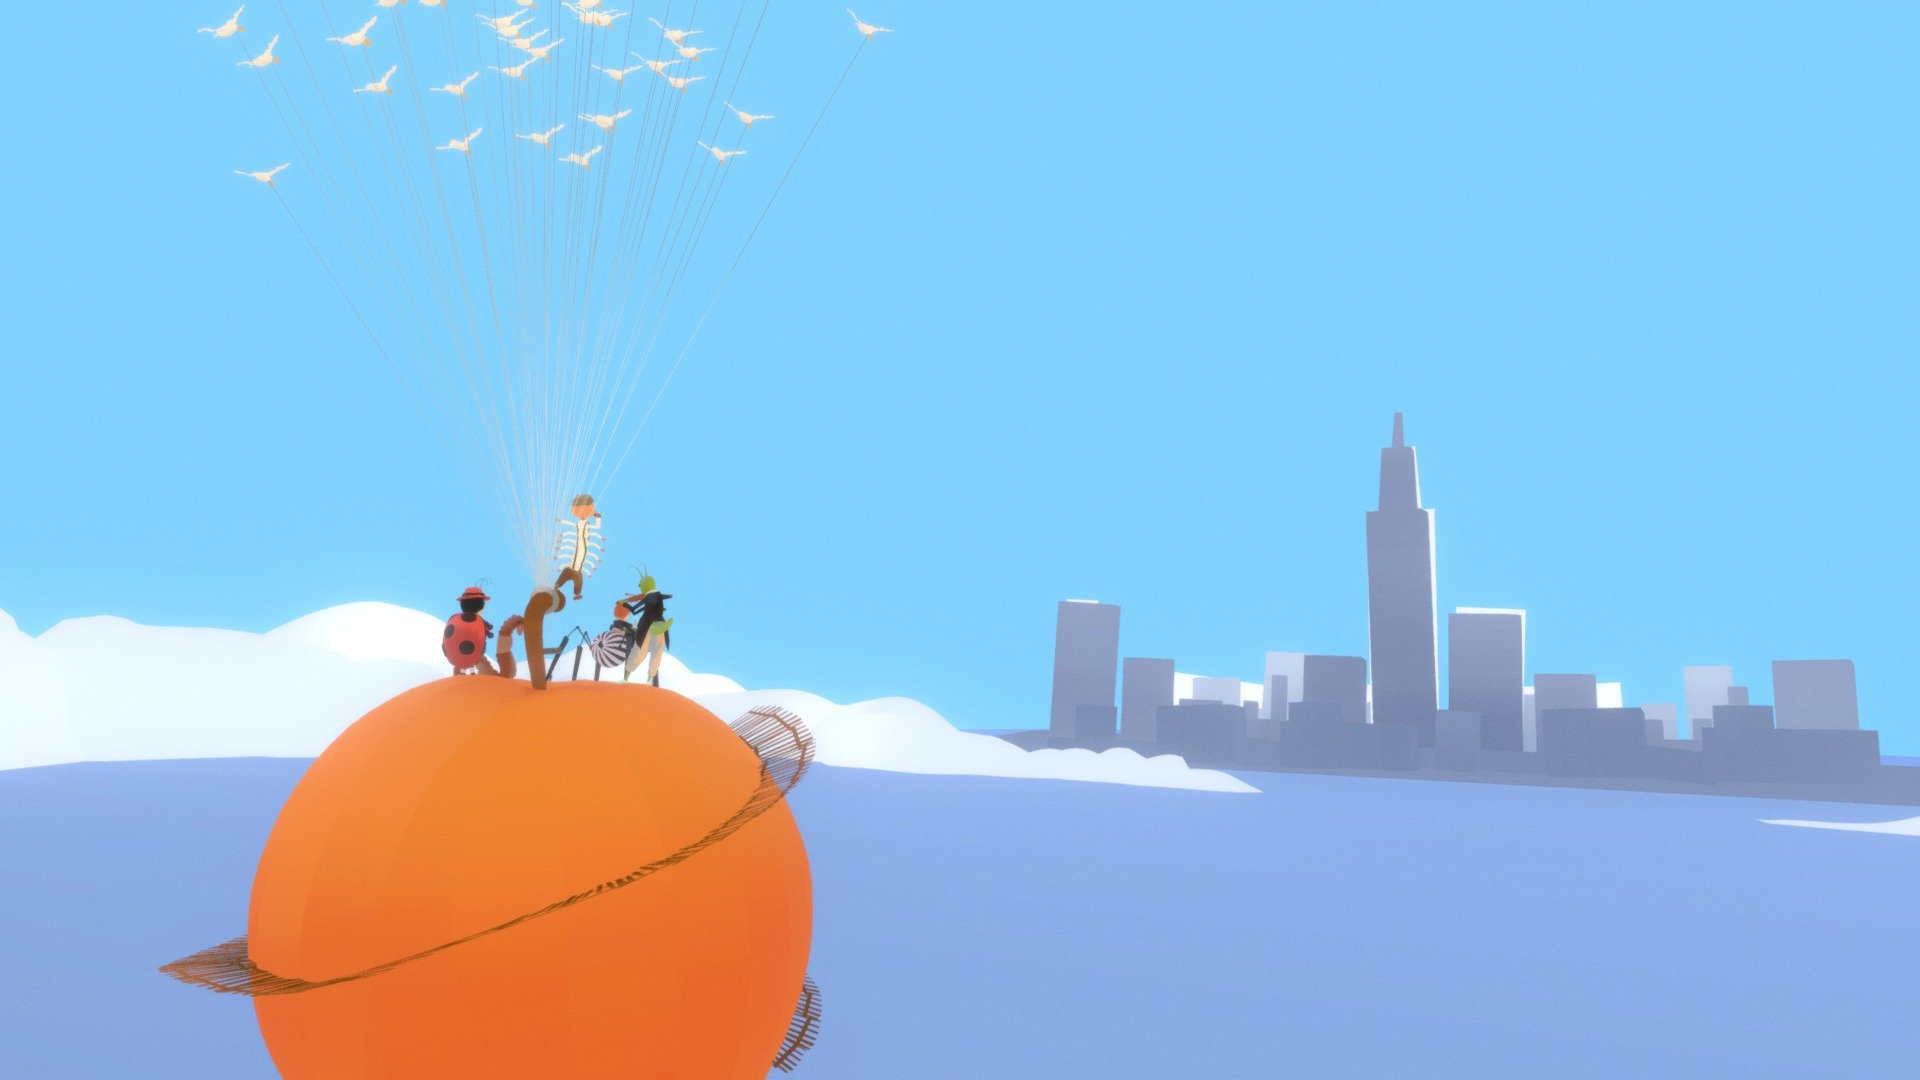 James And The Giant Peach 3d Model By Kurtchangart